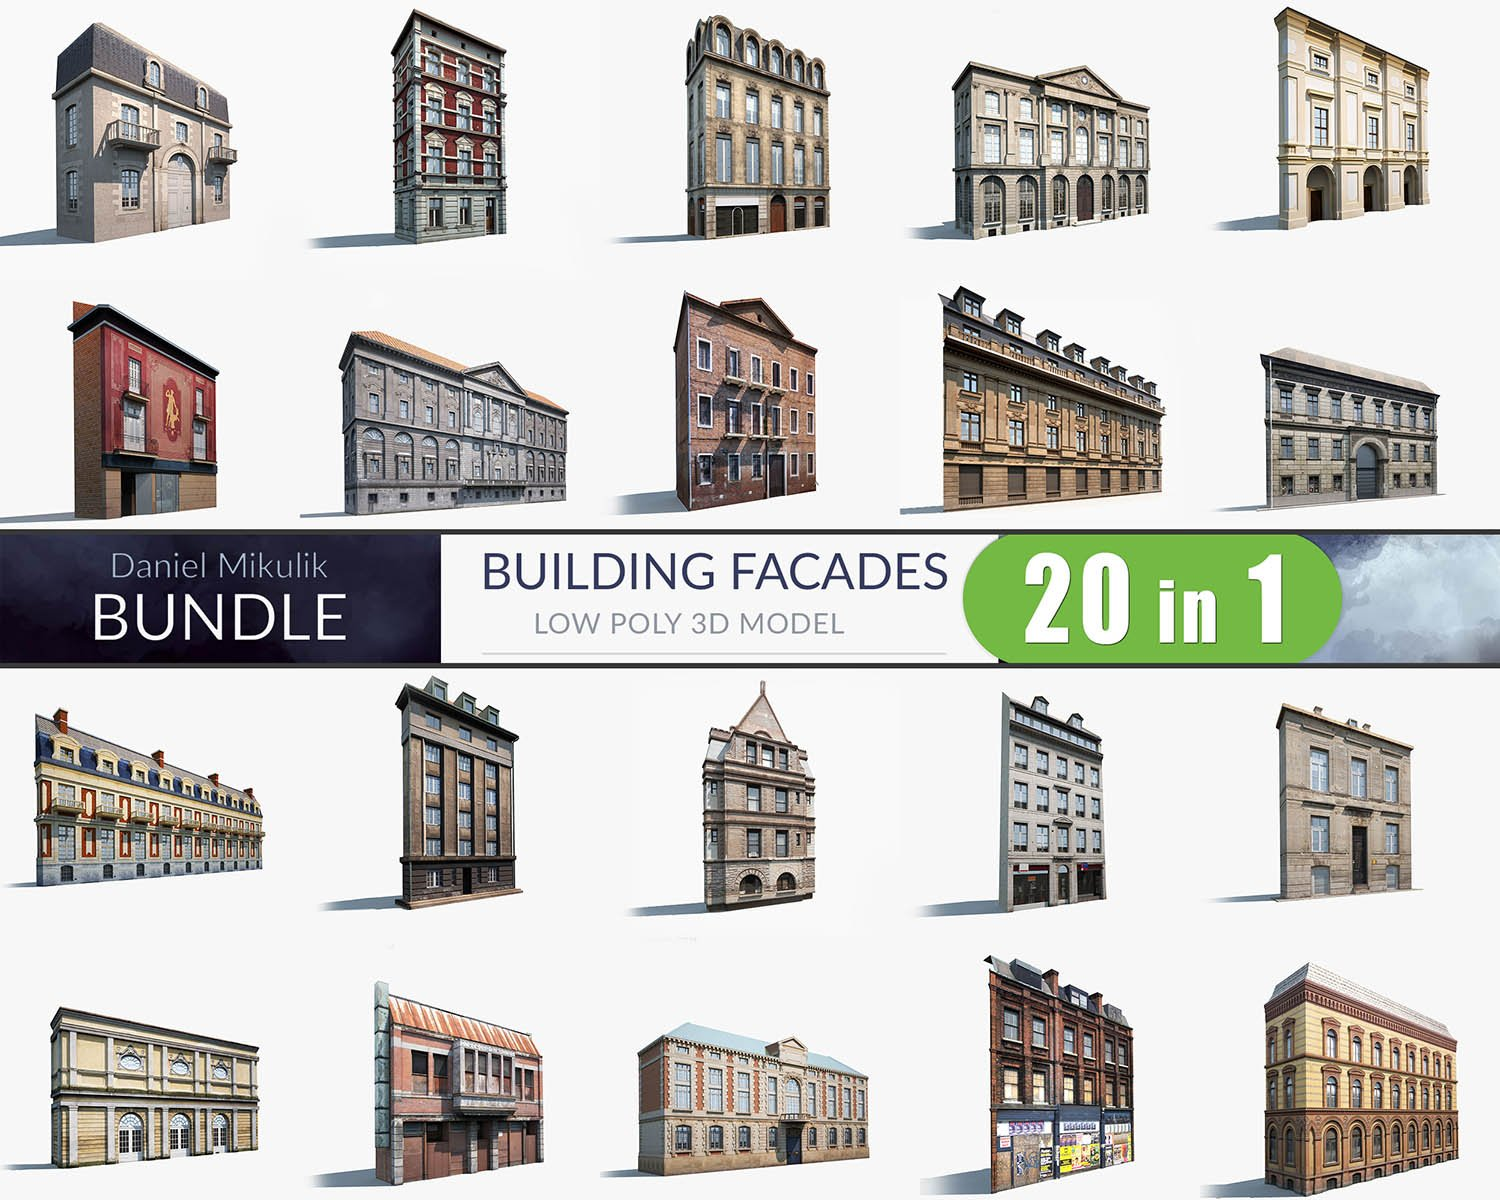 3d buildings facade